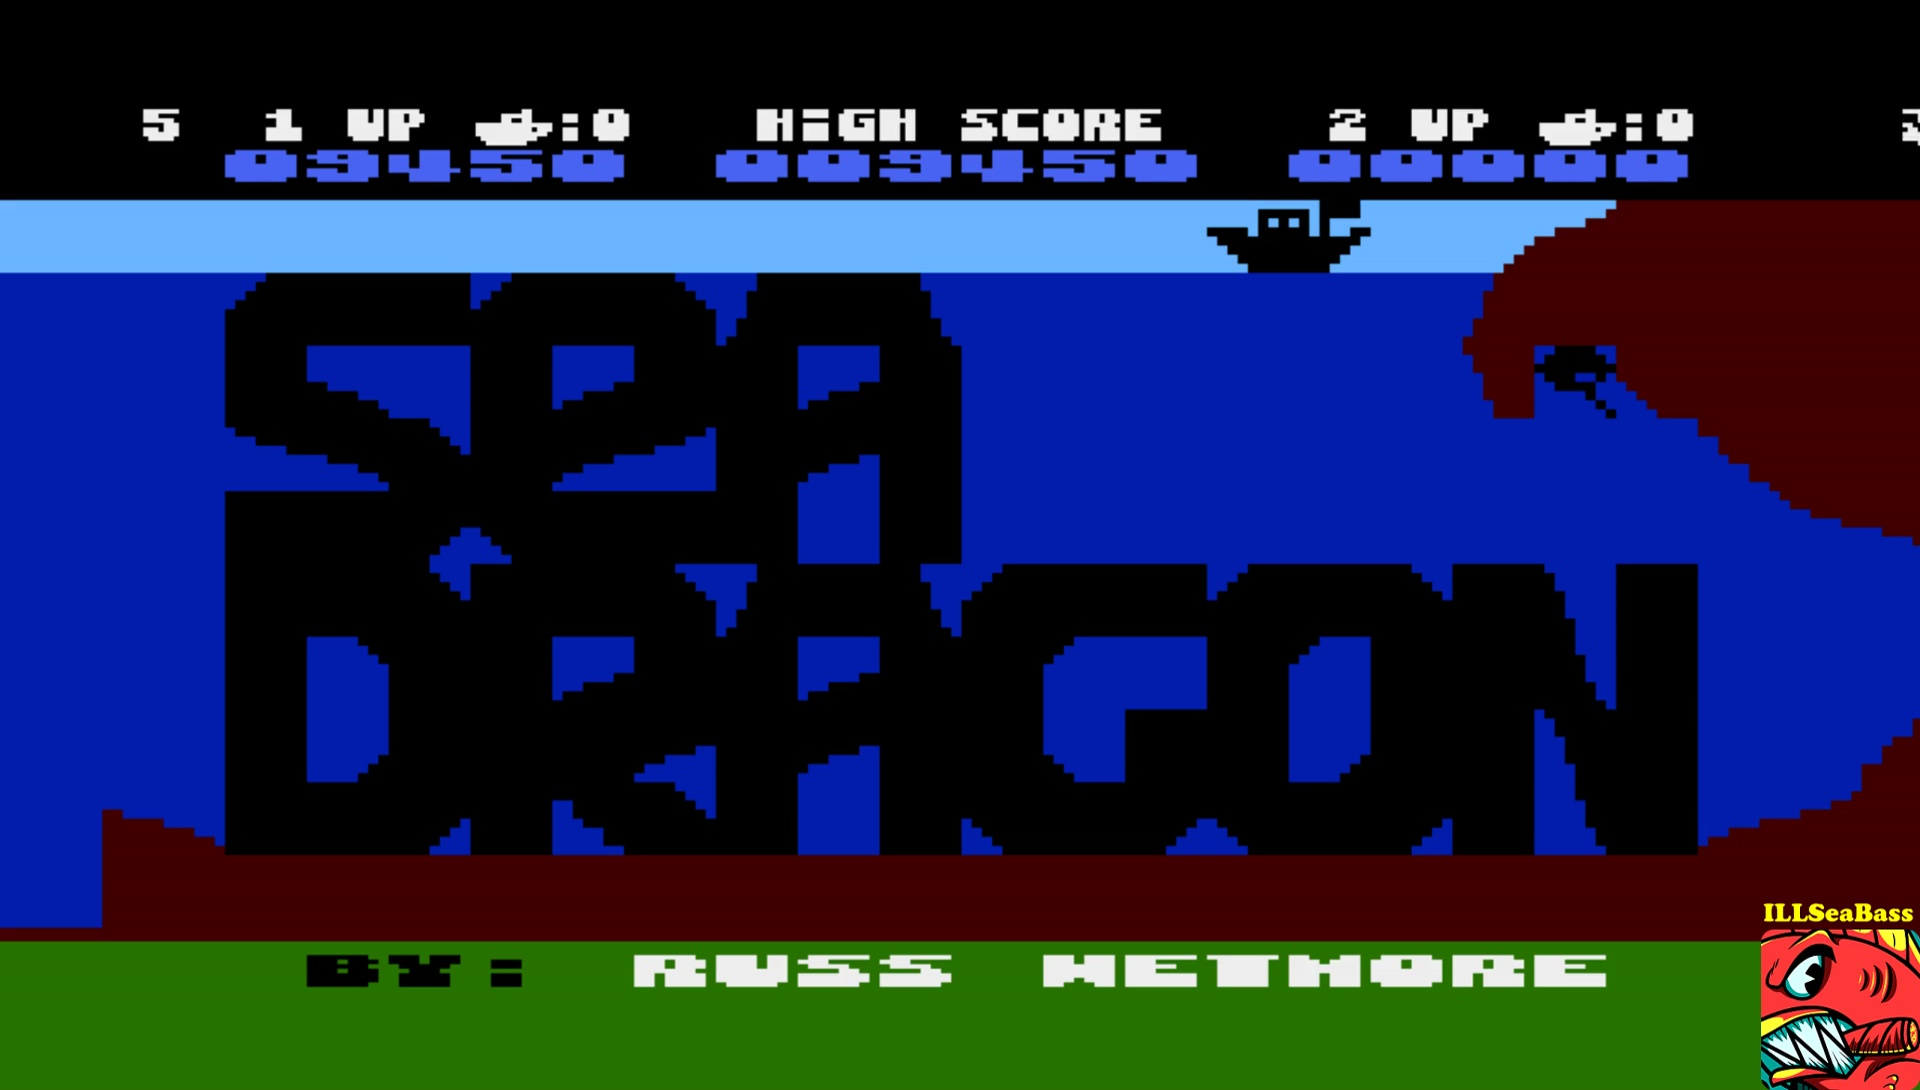 ILLSeaBass: Sea Dragon (Atari 400/800/XL/XE Emulated) 9,450 points on 2017-05-18 23:17:49